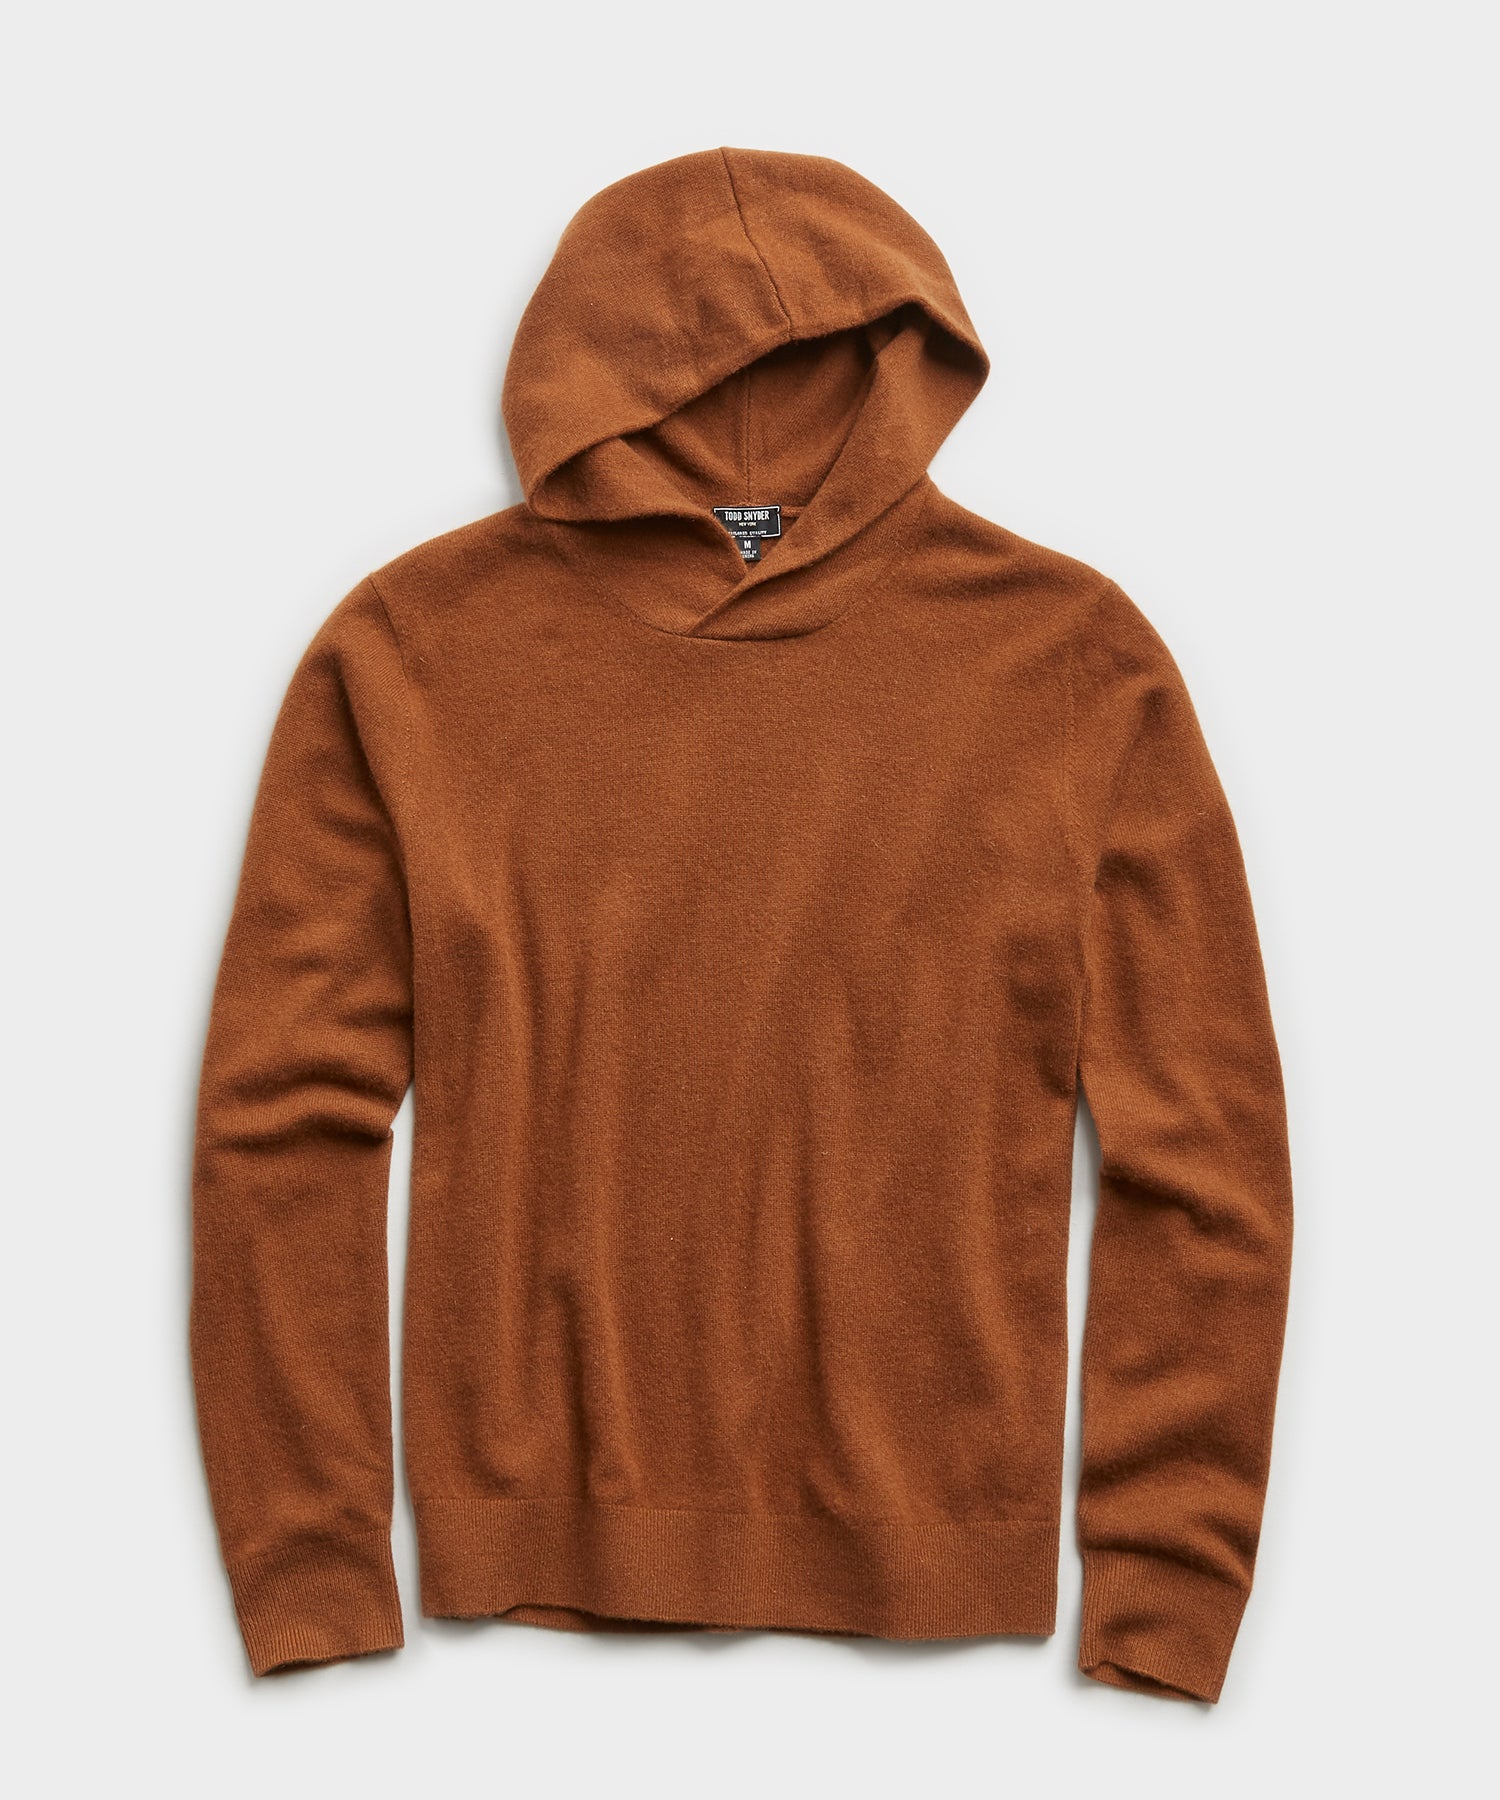 Cashmere Hoodie in Toasted Almond